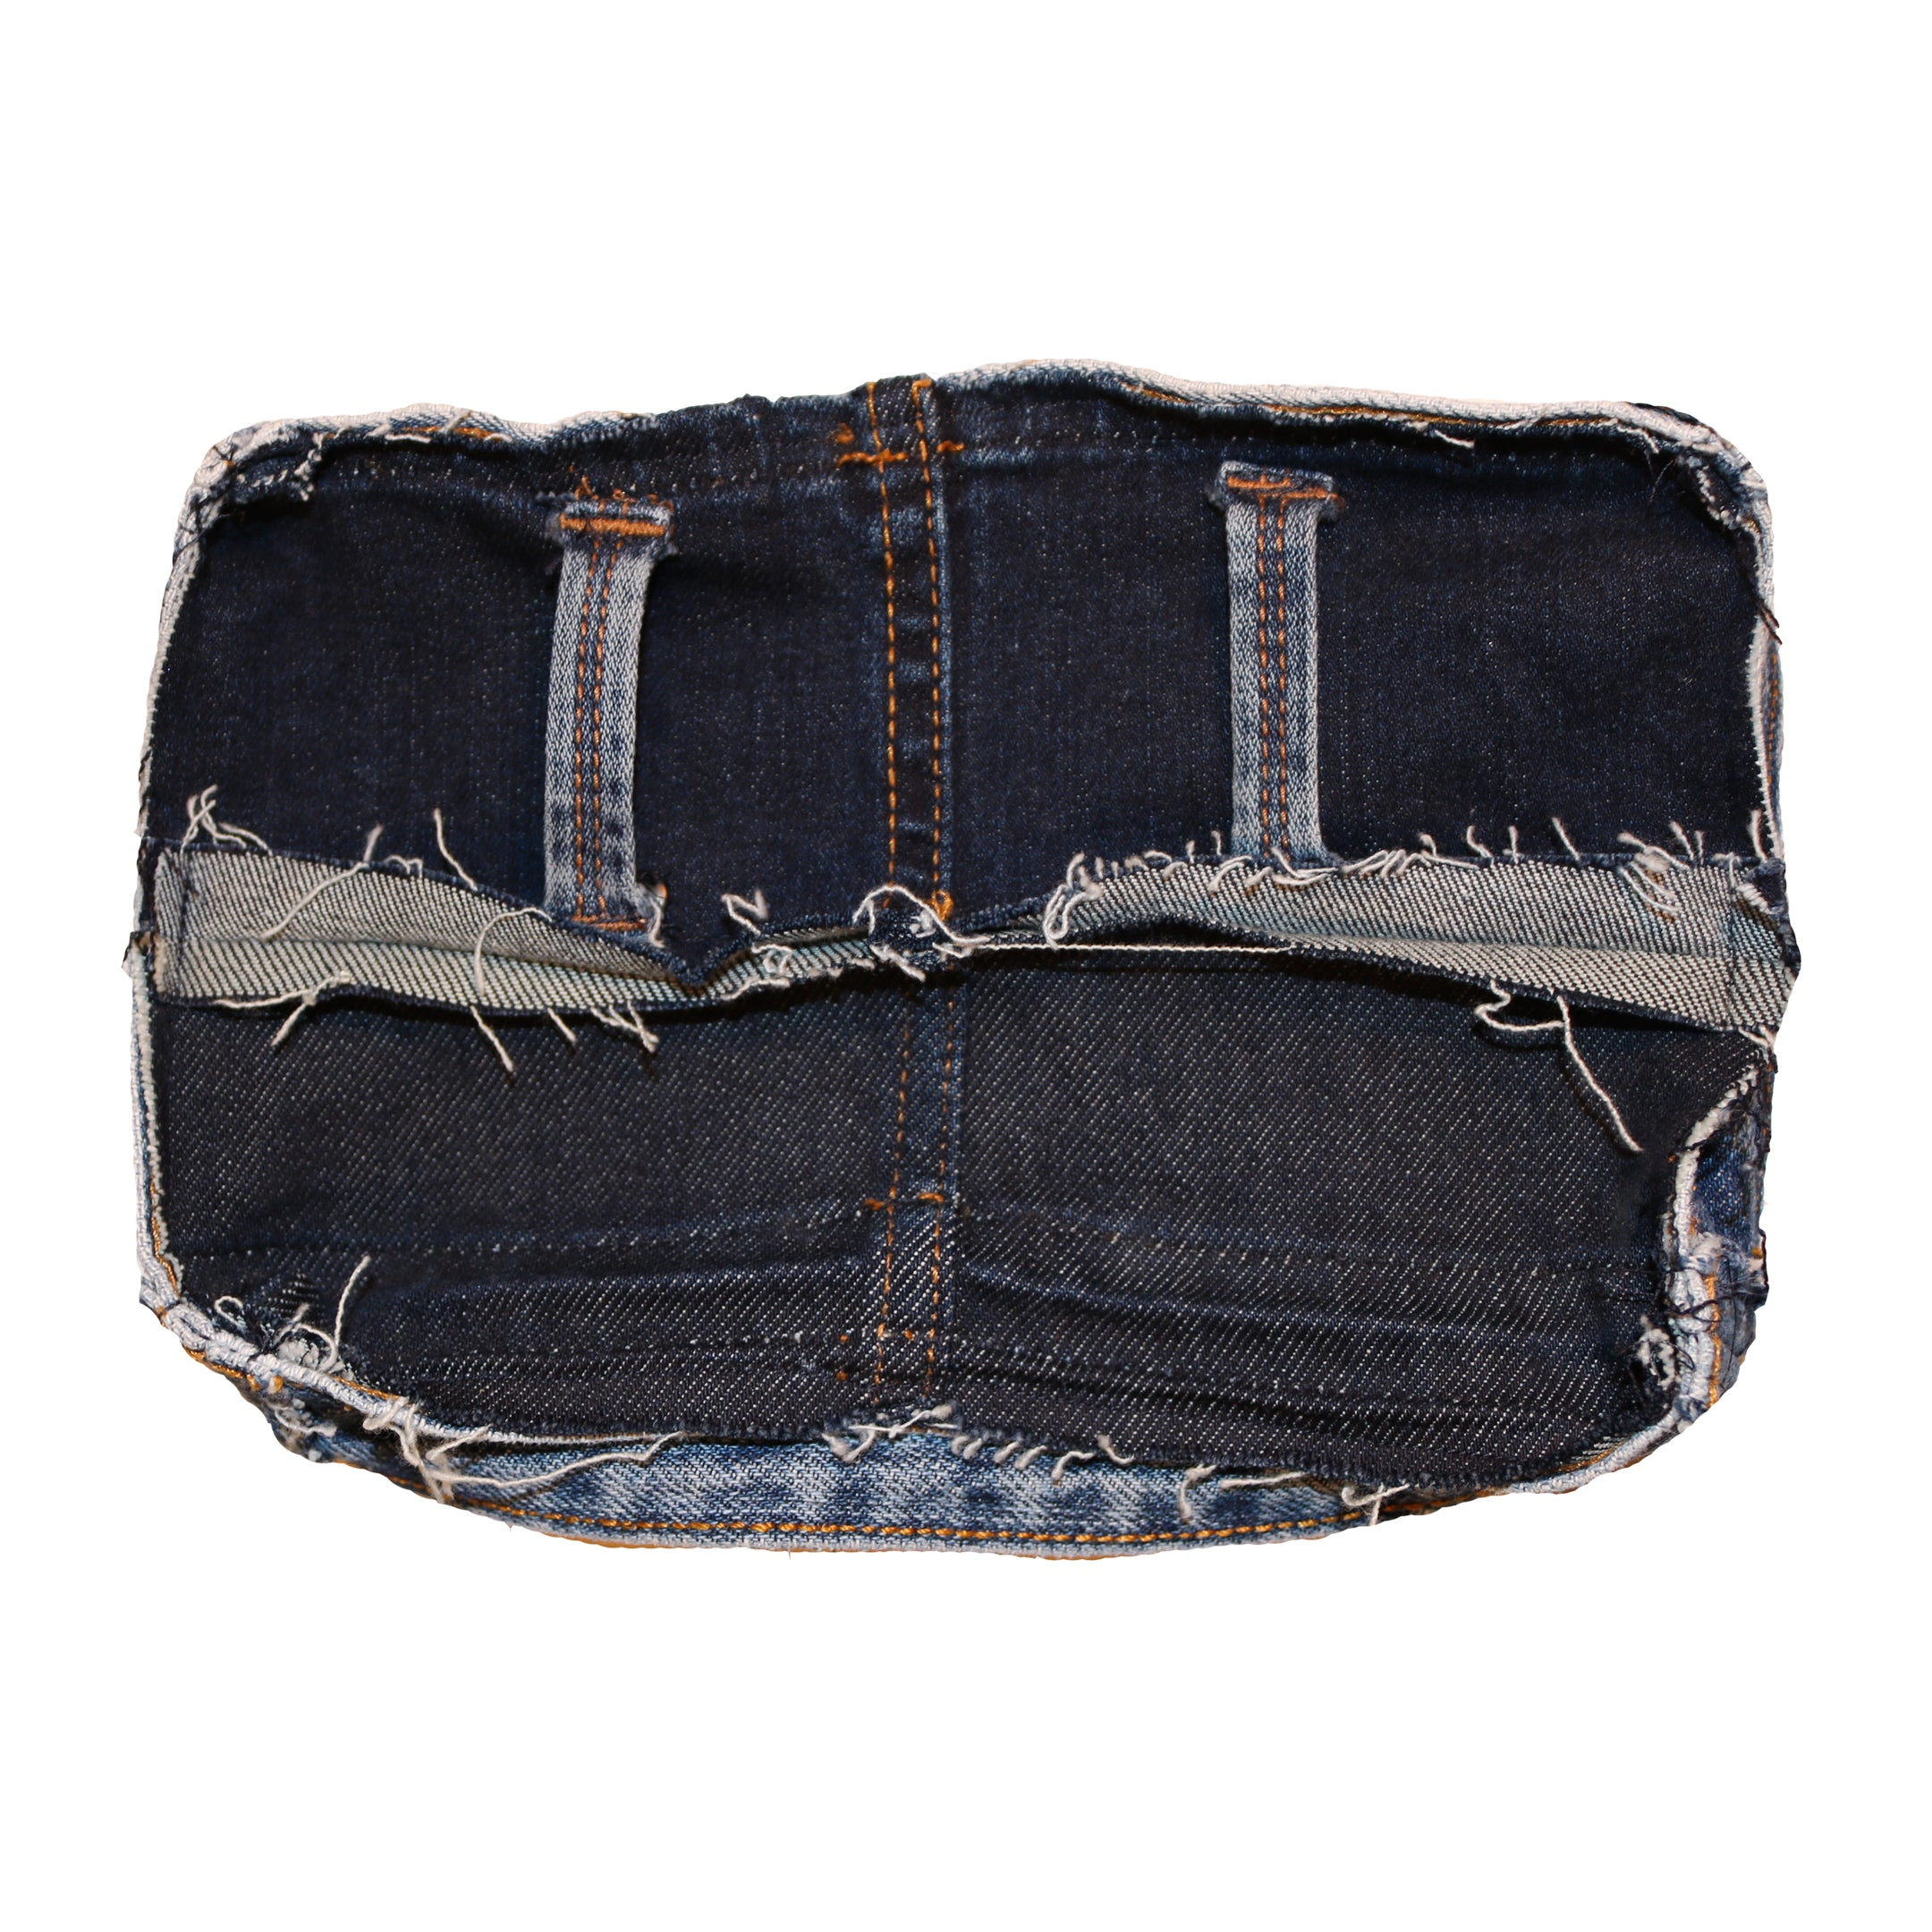 Genderless one-of-a-kind upcycled denim belt bag